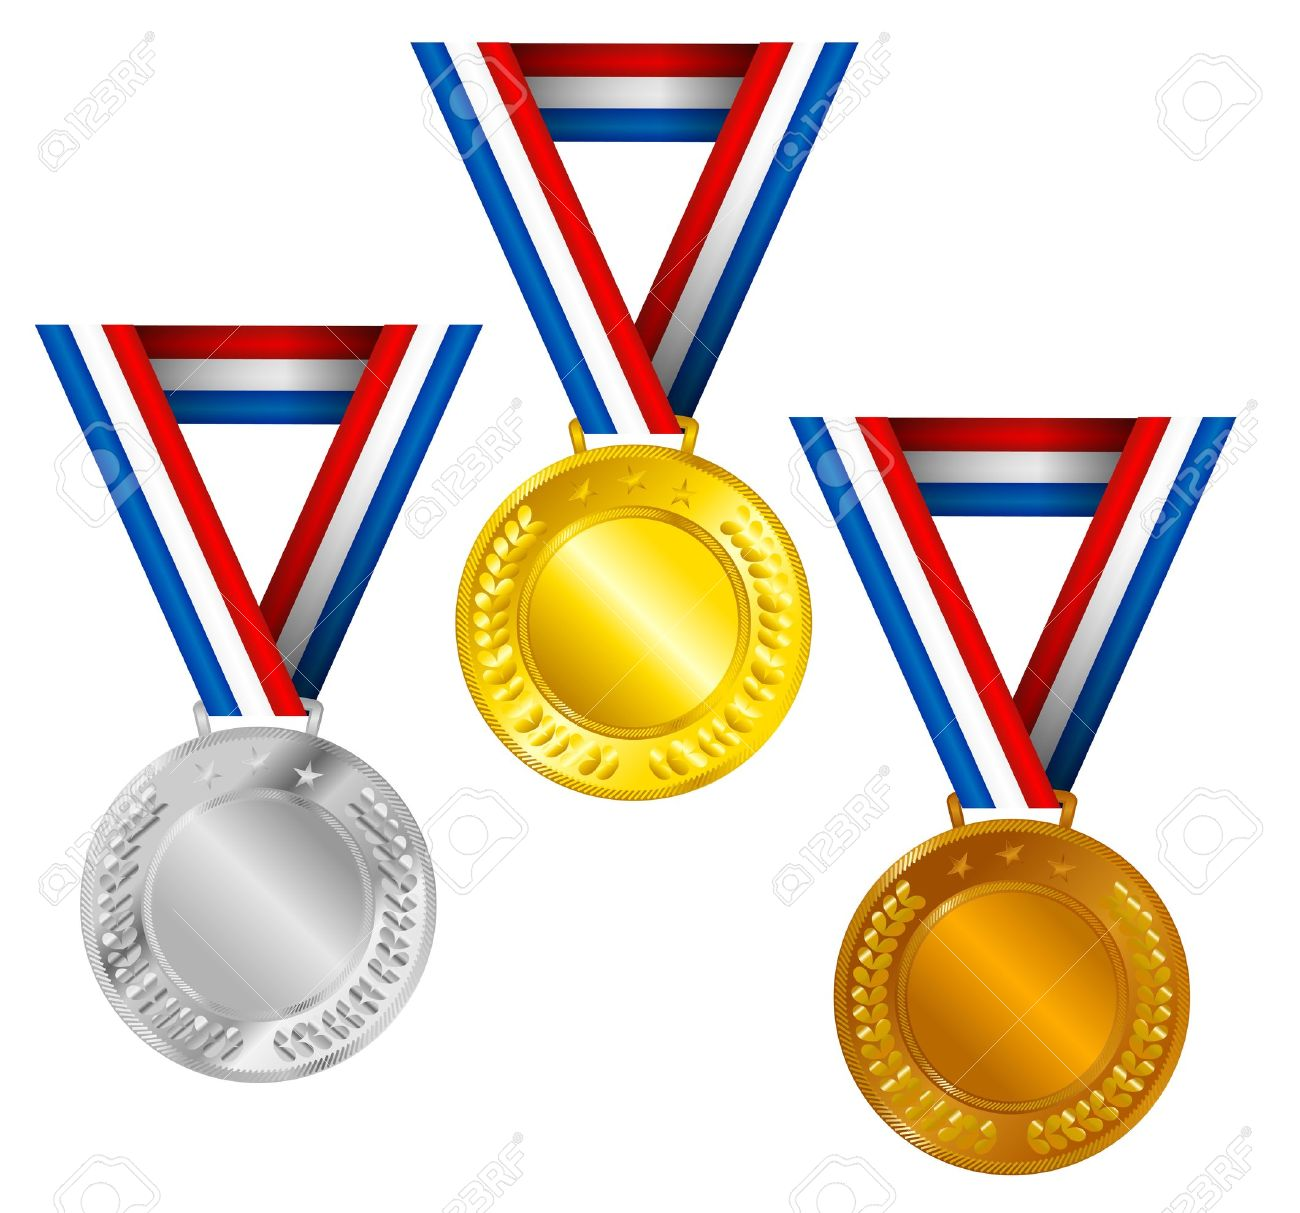 Medals and ribbons clipart » Clipart Station.